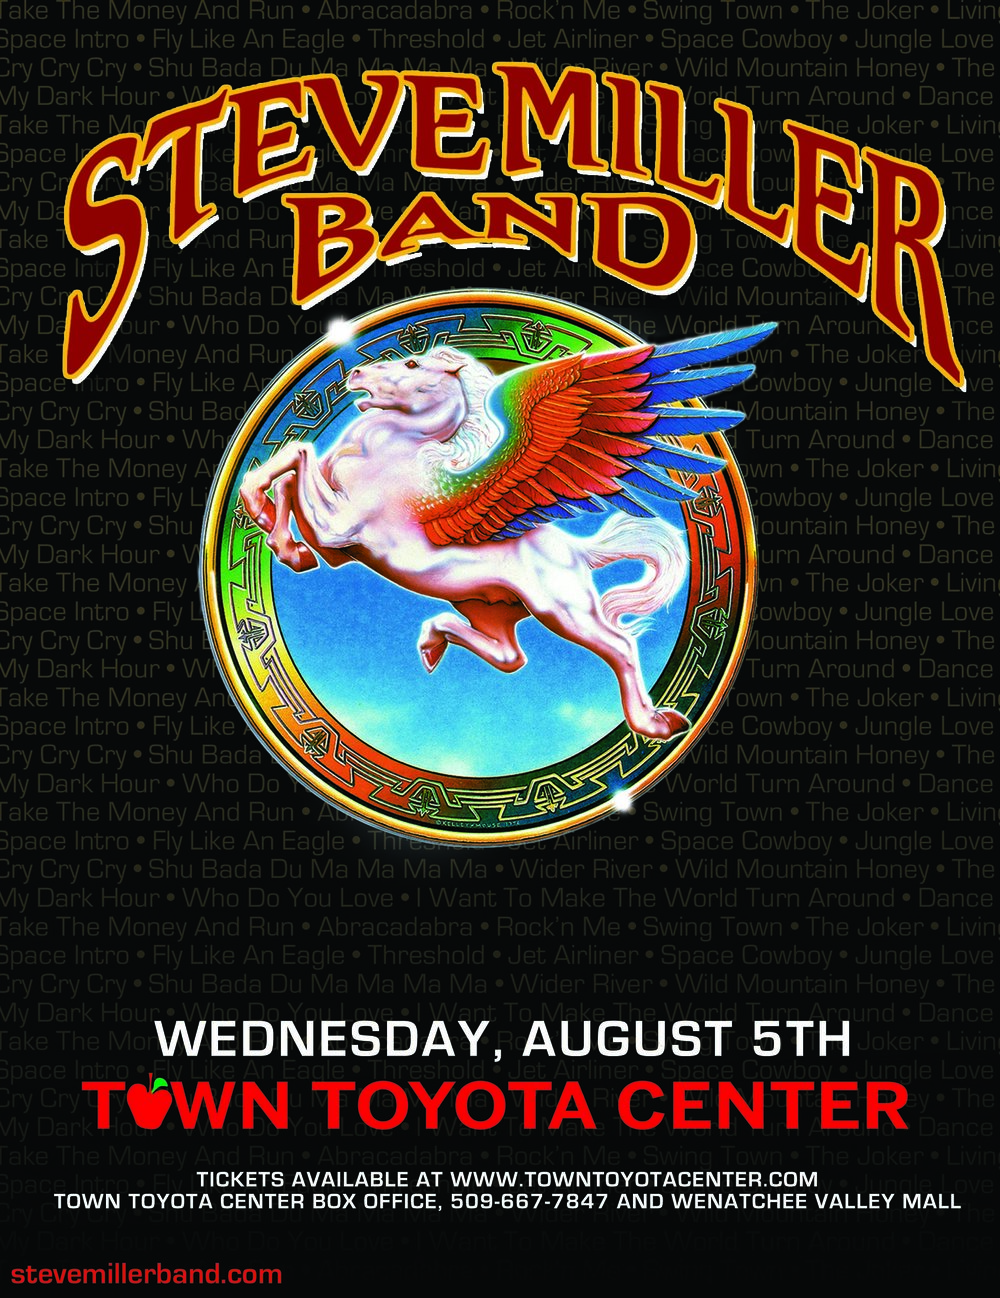 SteveMillerBand flyer.jpg